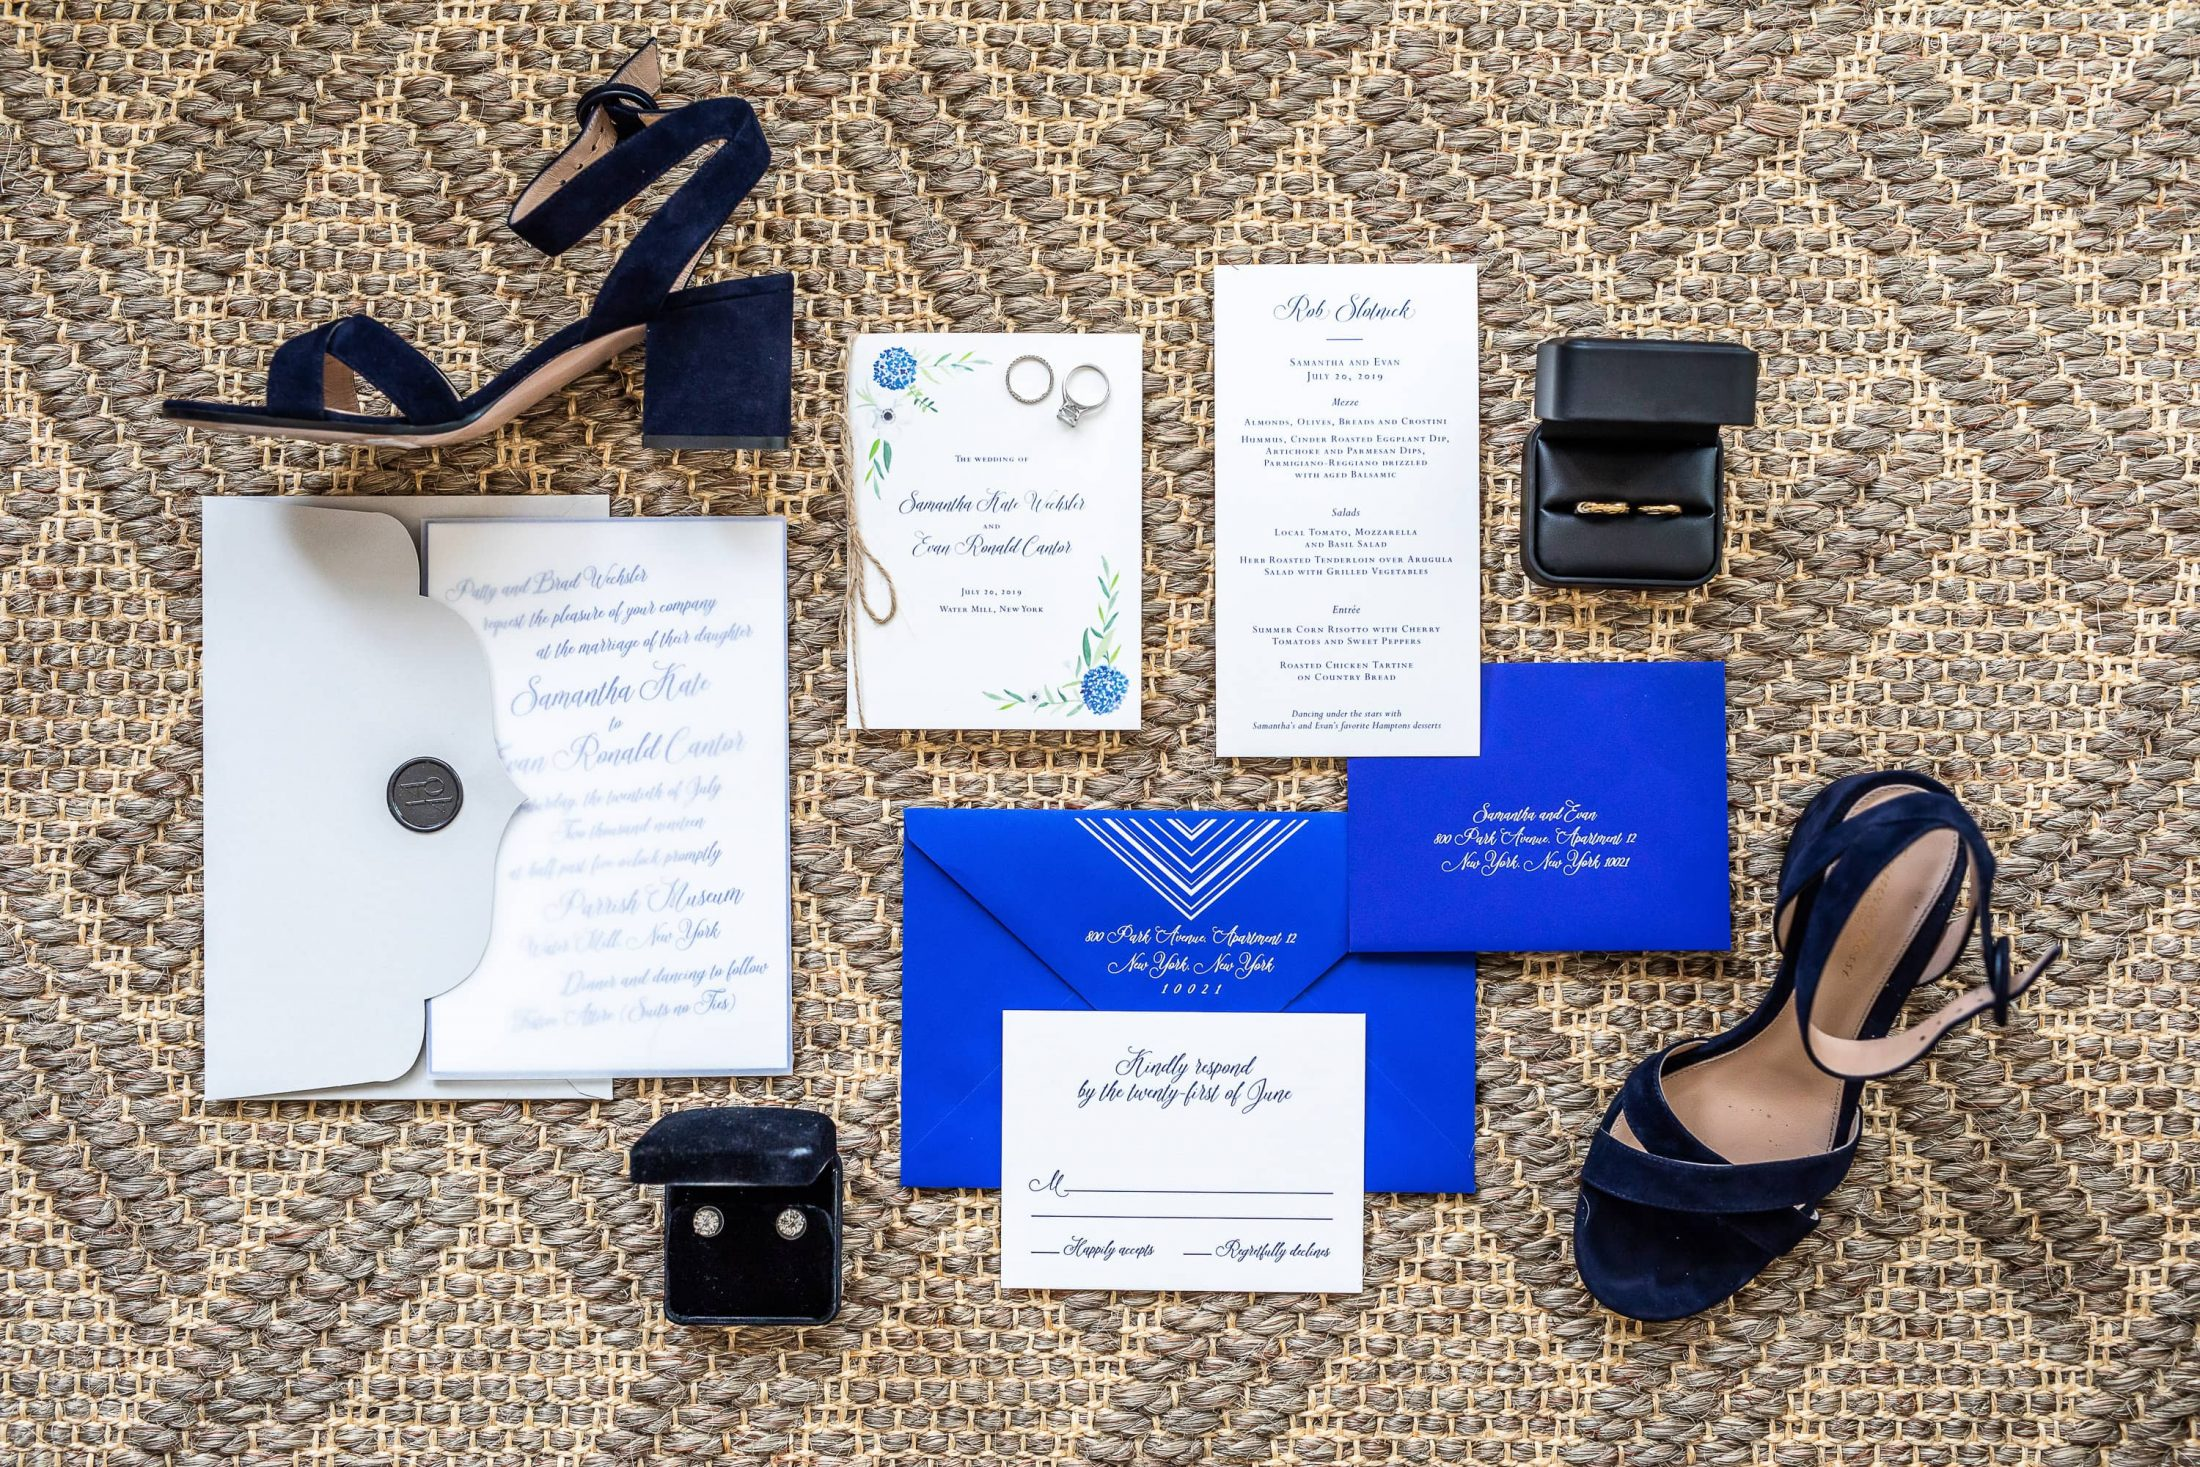 Wedding stationery at this Hamptons wedding weekend held at The Parrish Museum | Photo by Roey Yohai Studio